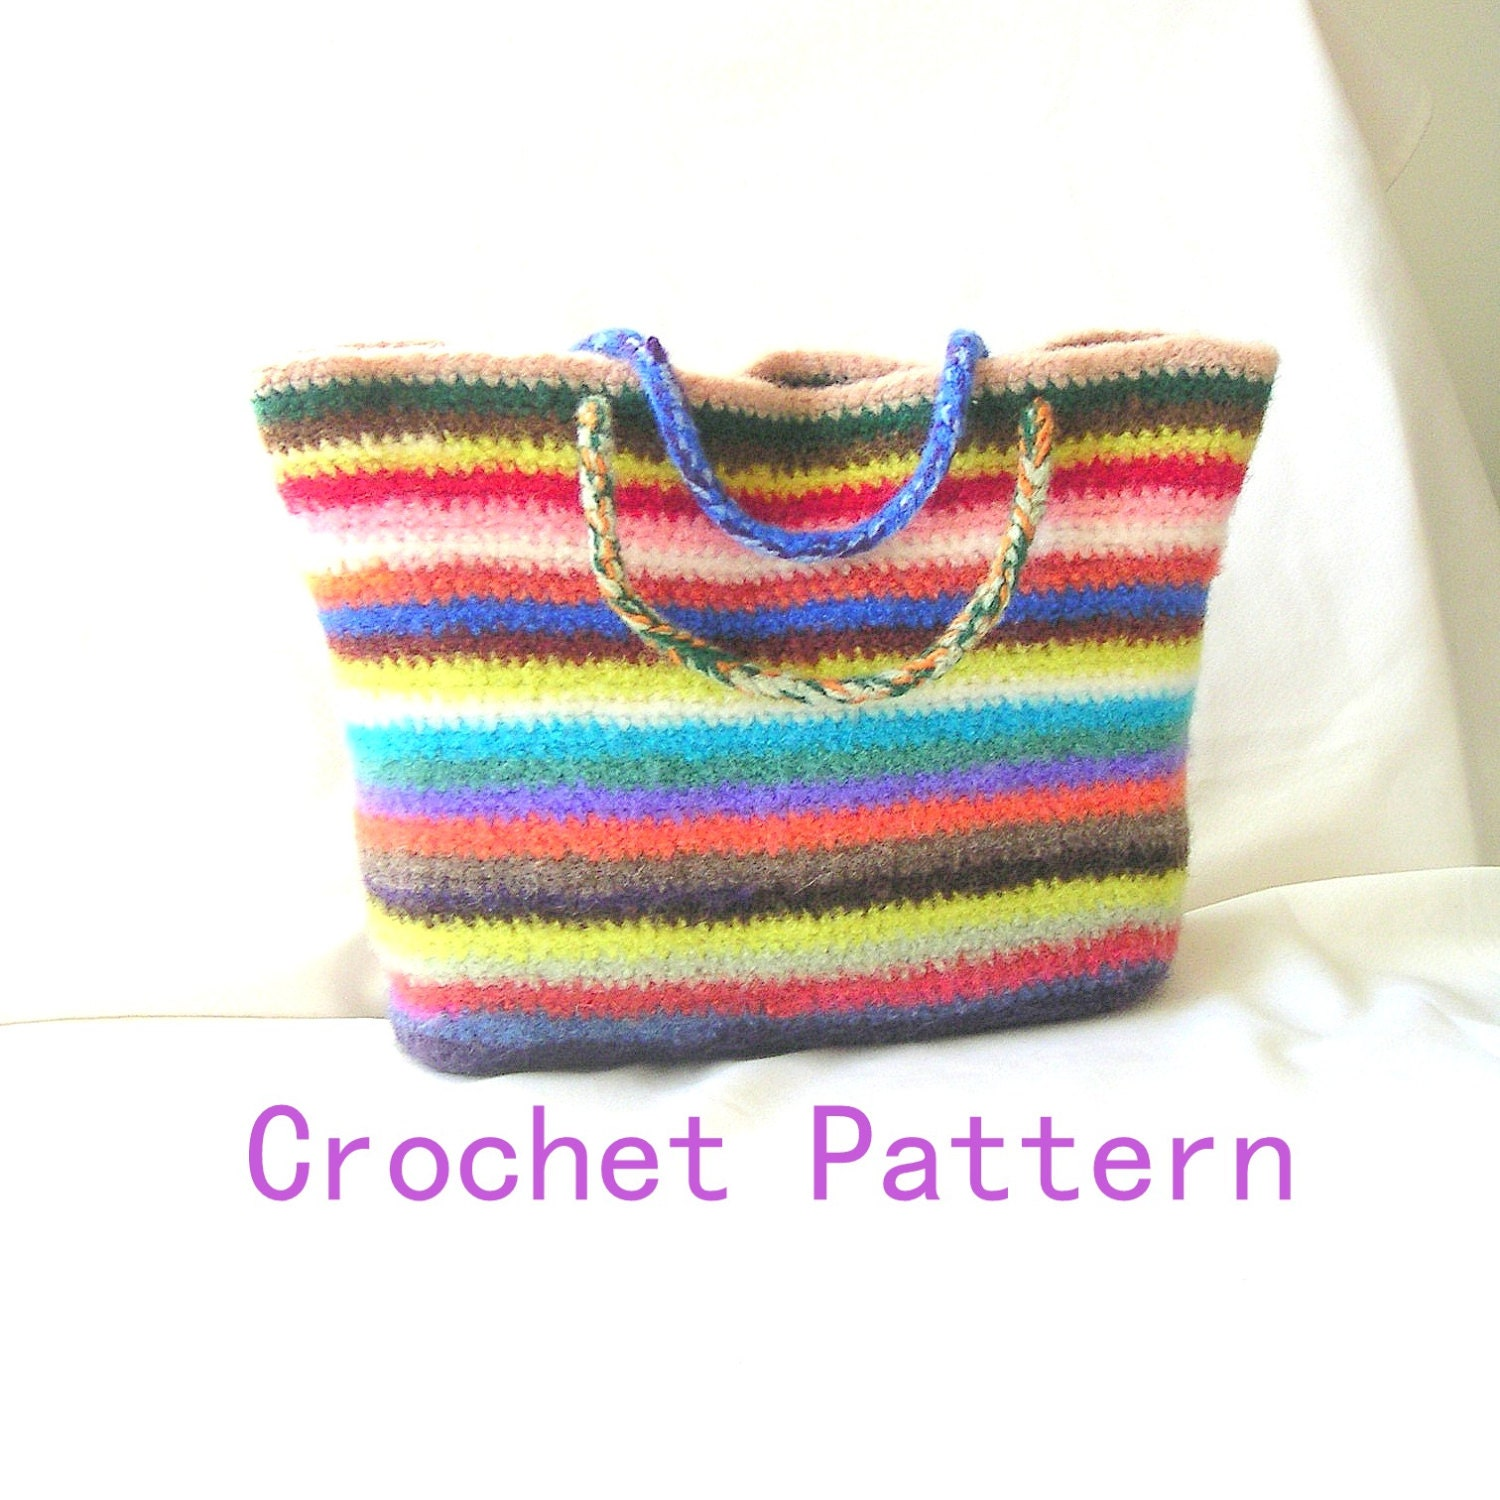 Easy Felted Crochet Bag Pattern : How to Make Crochet Bag Pattern Tutorial Easy Crochet Felted